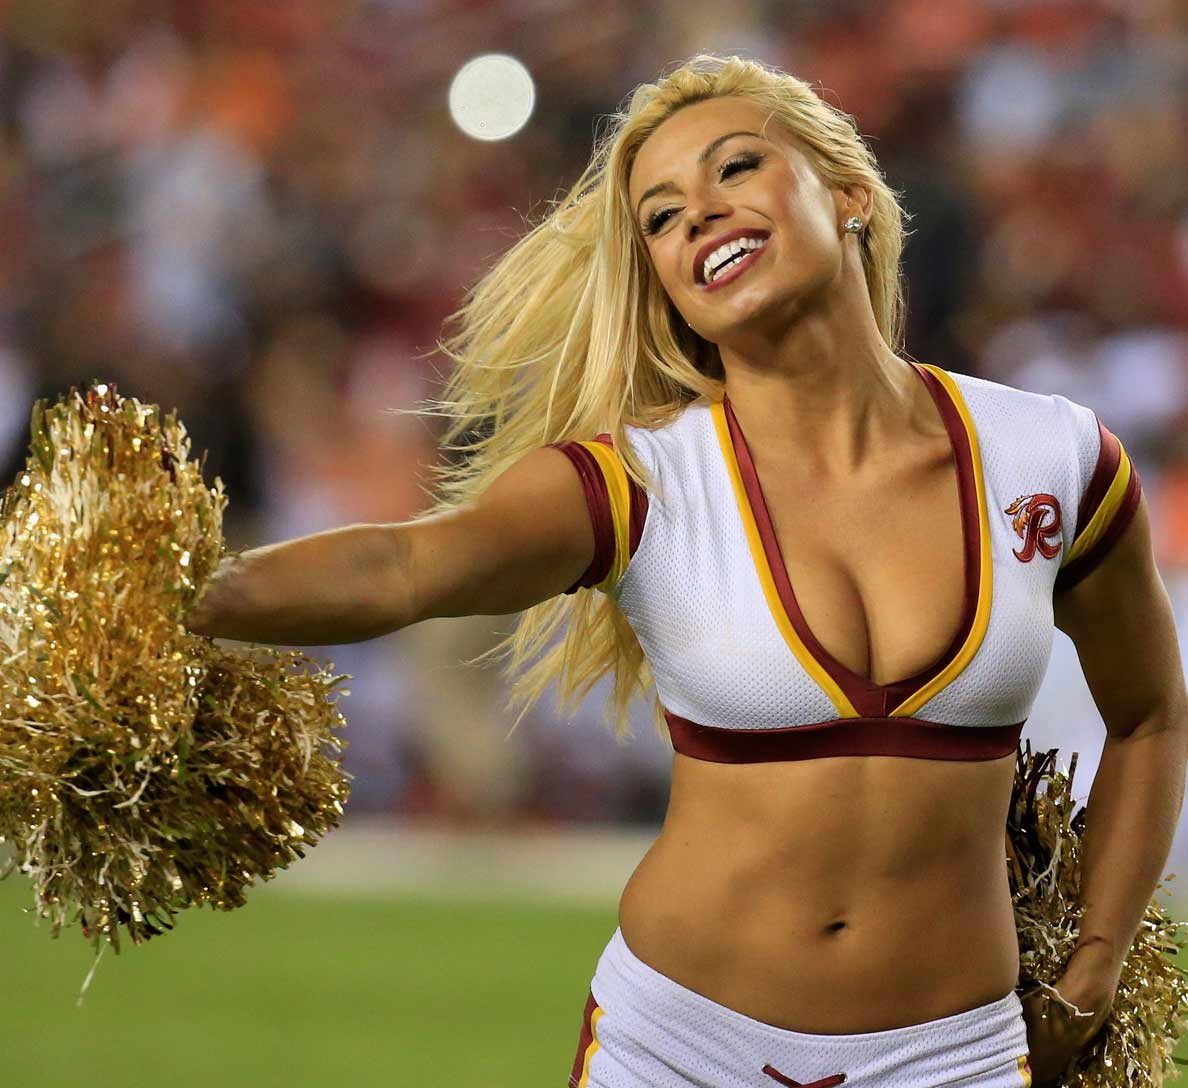 the 10 hottest cheerleaders in the nfl | muscle & fitness